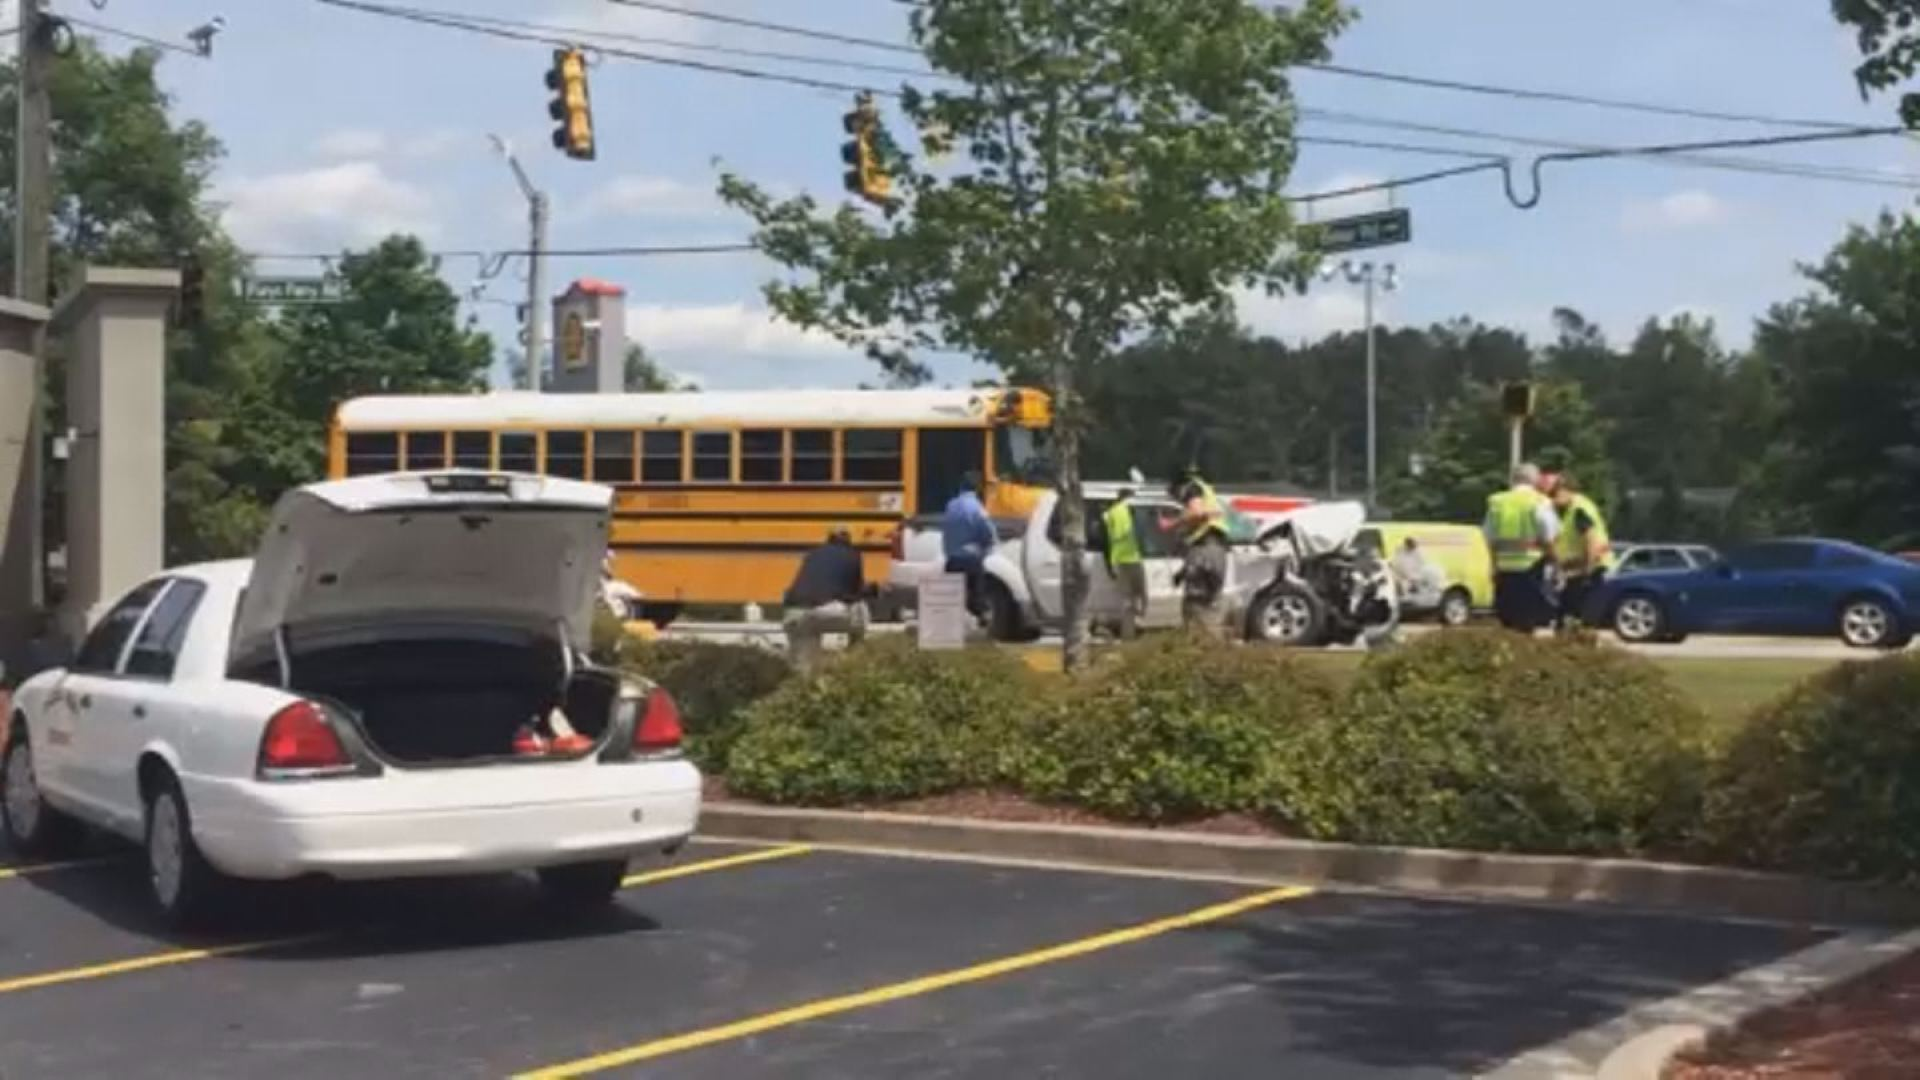 UPDATED ON 6_ School Bus Involved In Crash On Fury's Ferry Road (Image 1)_27293